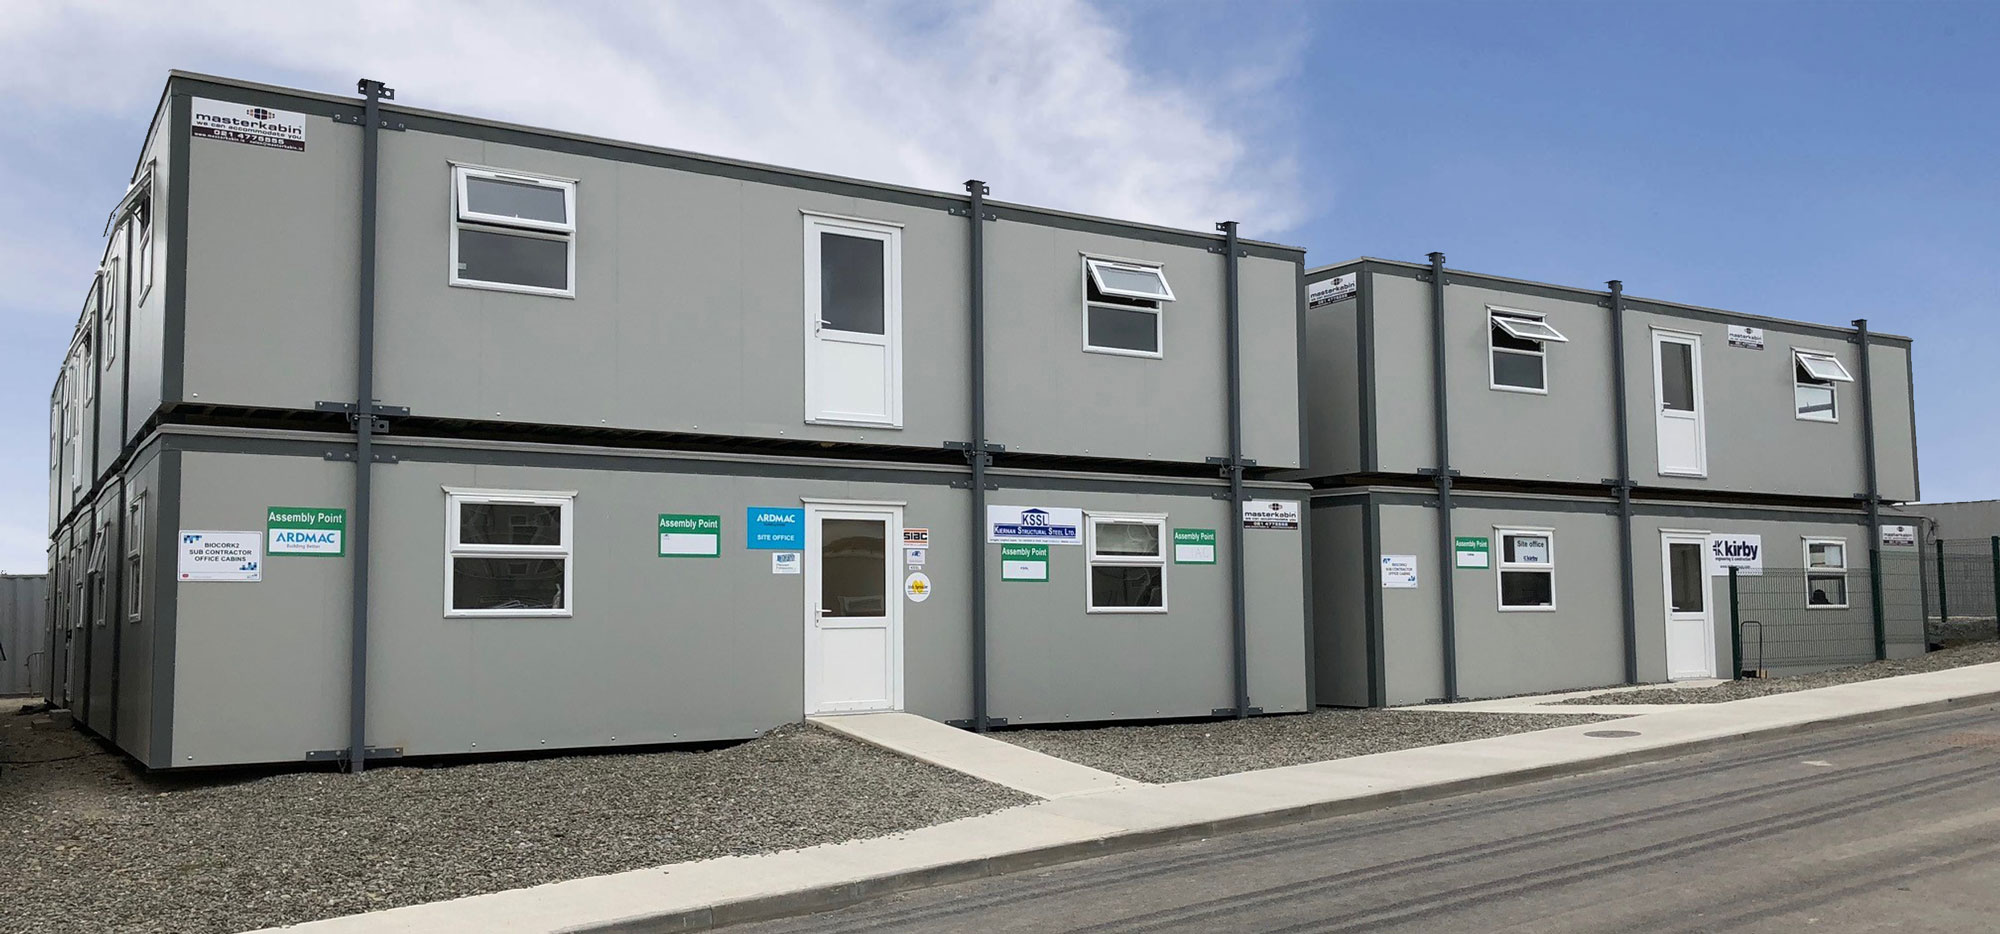 Masterkabin Leading Provider Of New And Used Modular Buildings And Portable Cabins